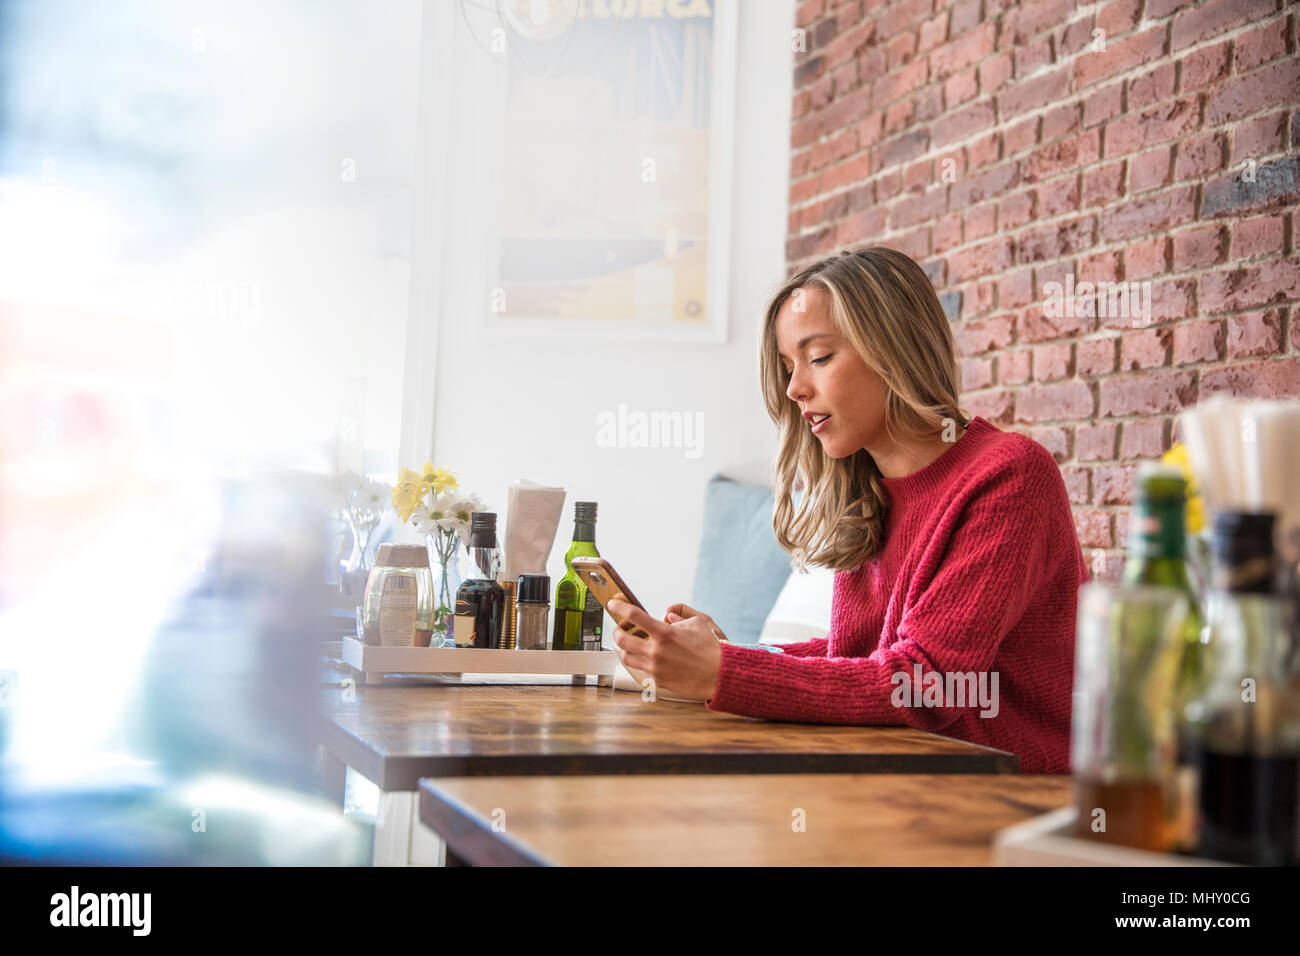 Woman sitting in cafe, looking at smartphone - Stock Image